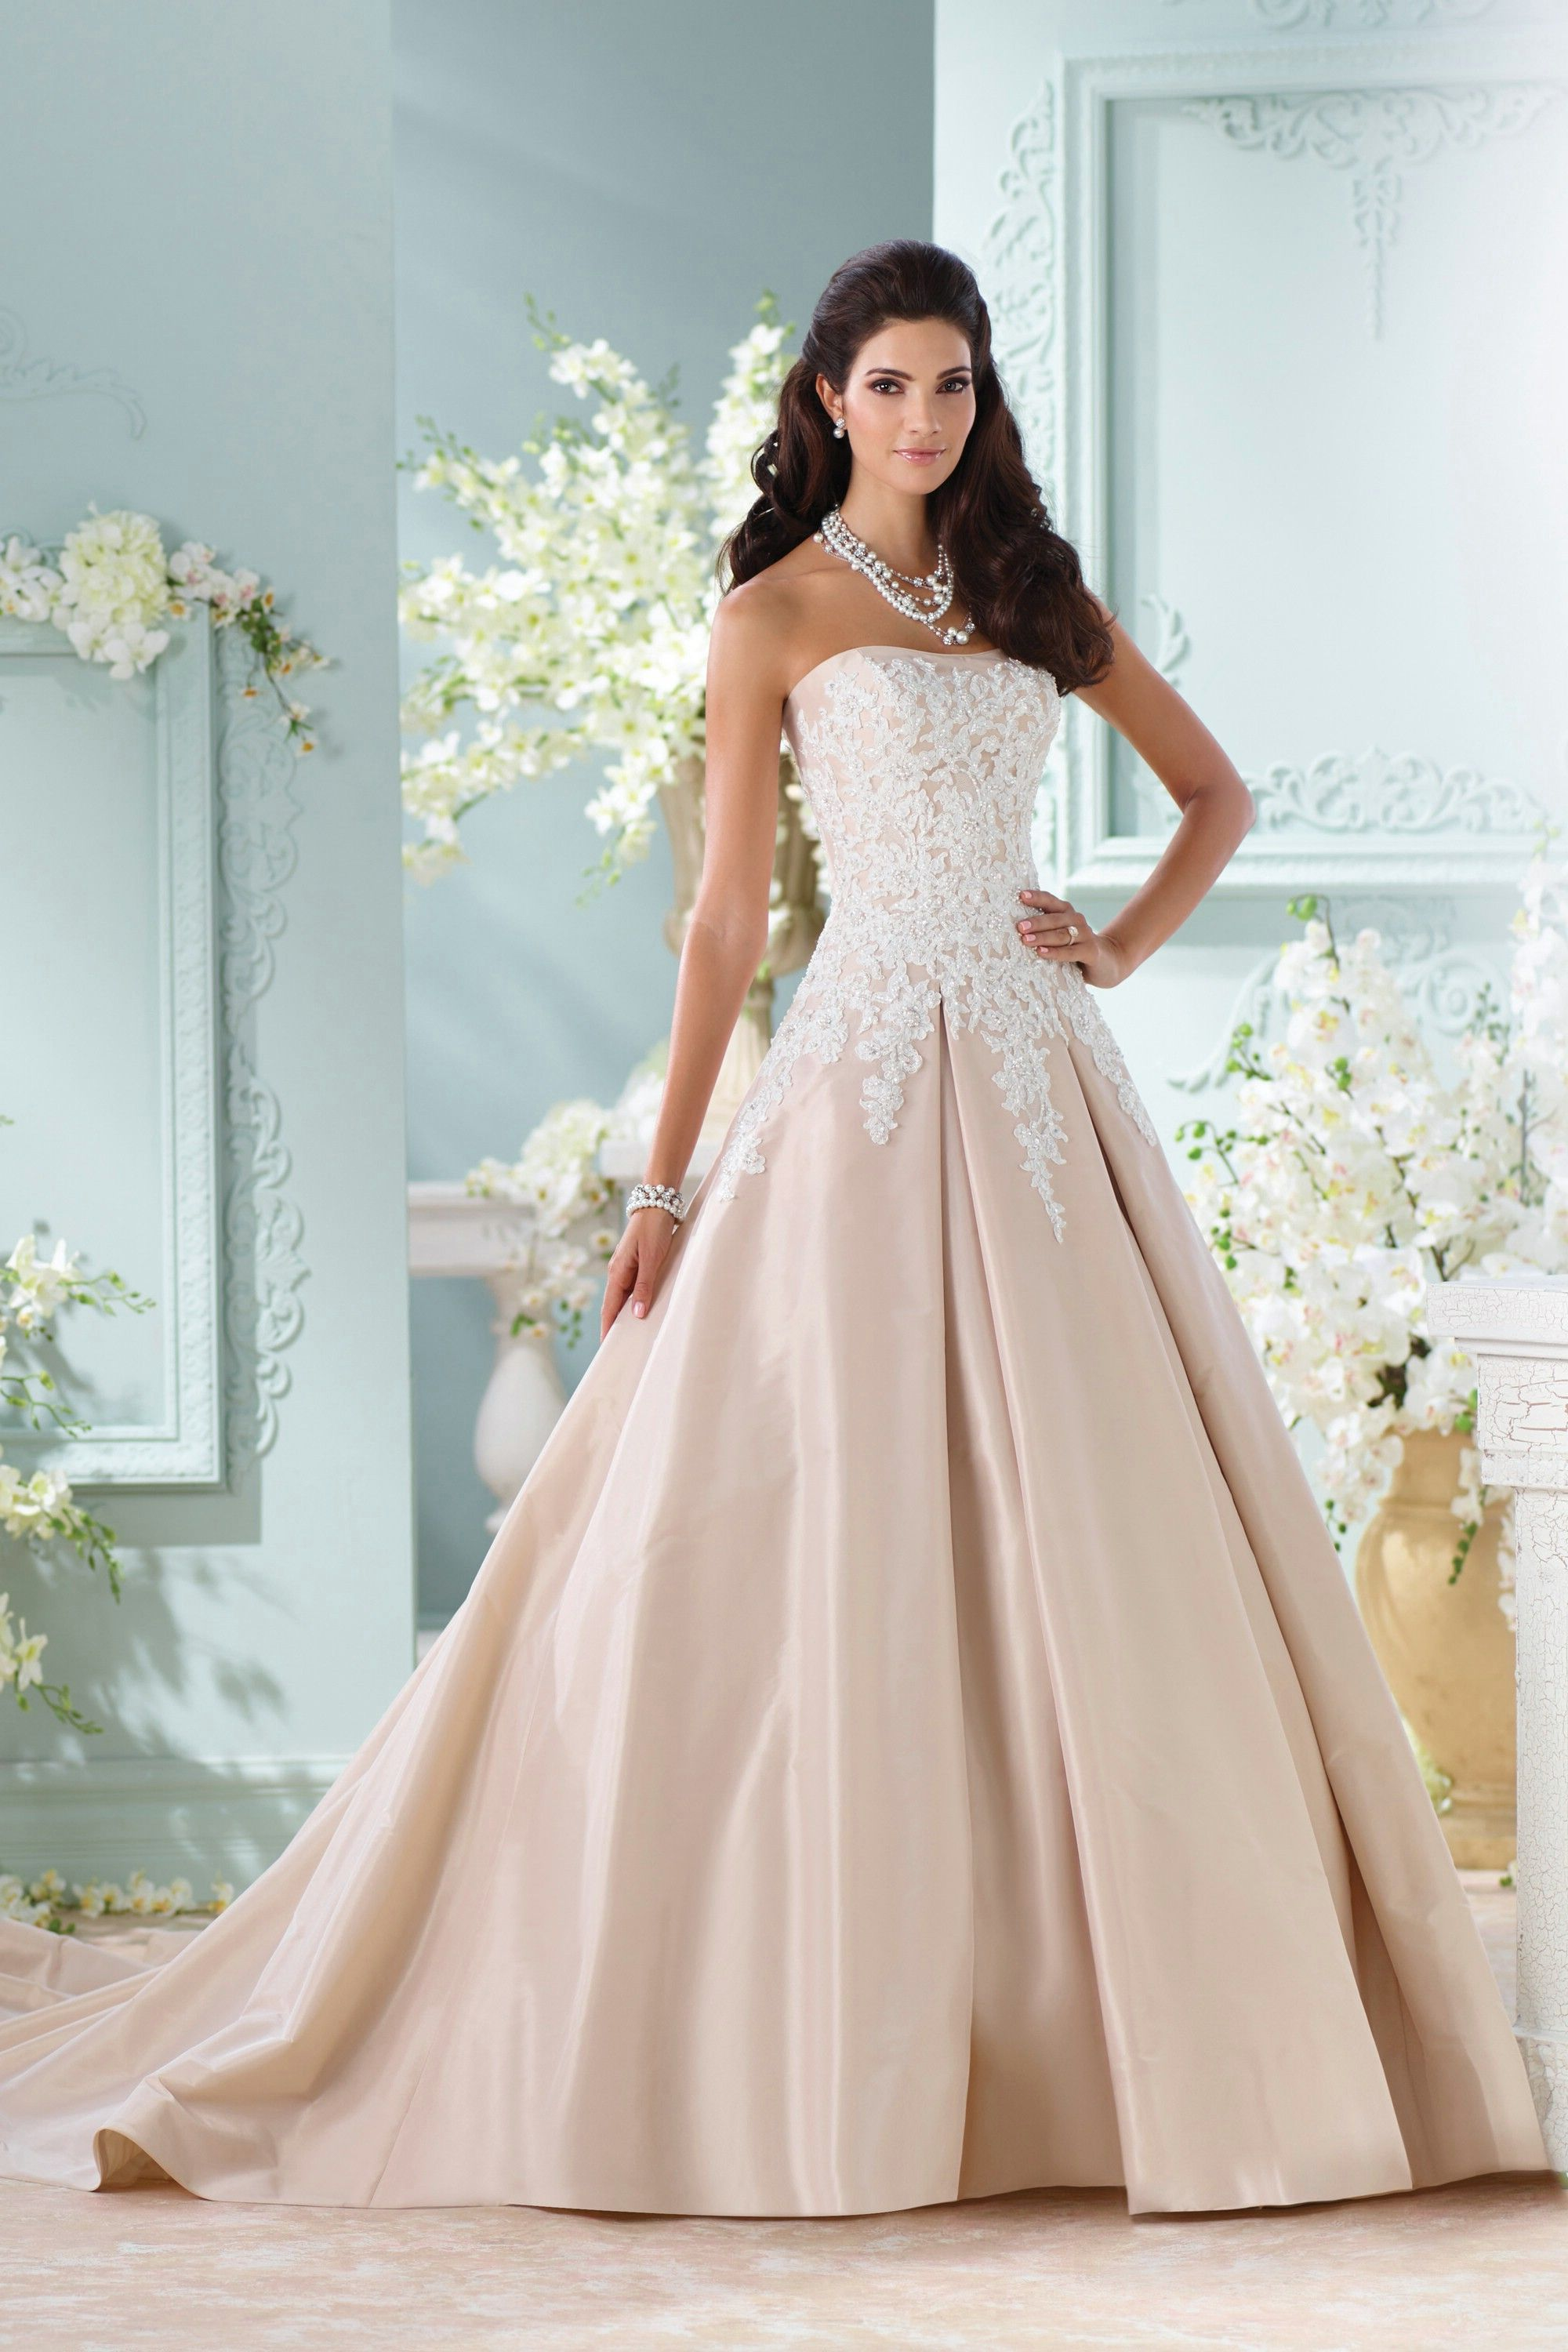 affordable wedding dresses dallas texas - Picture Ideas References